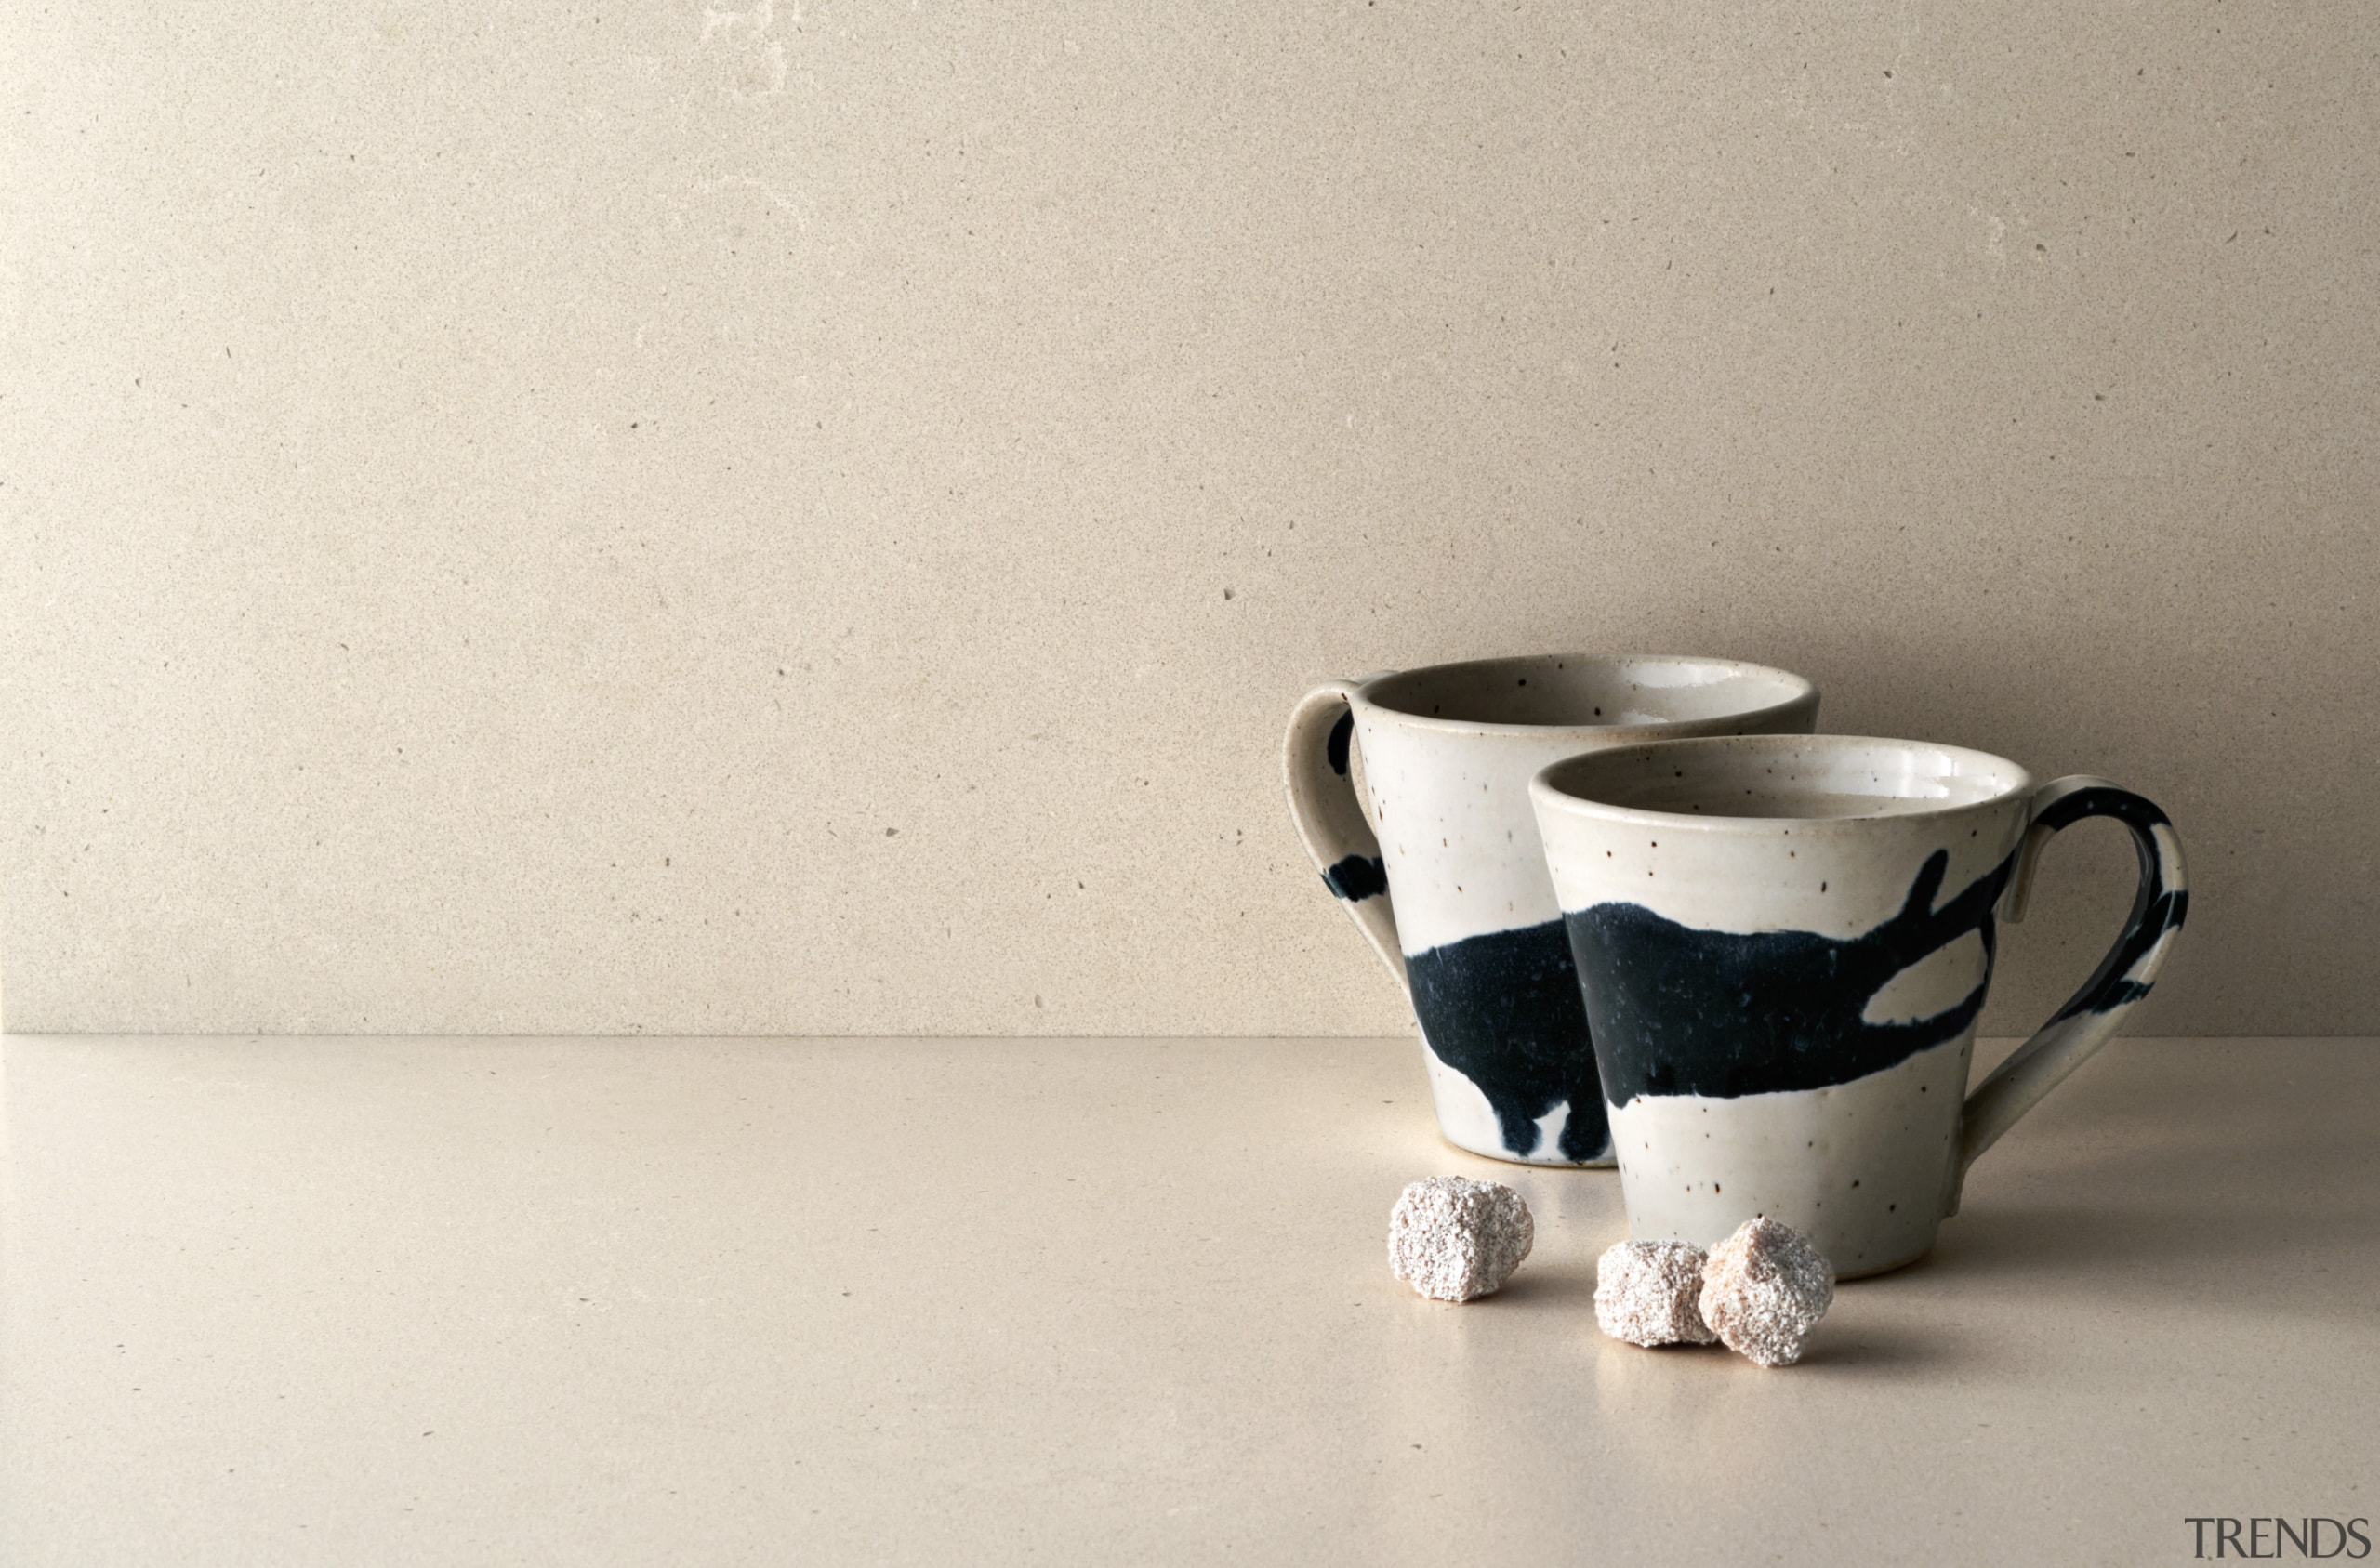 4001freshconcreteculandscape1.jpg - 4001freshconcreteculandscape1.jpg - ceramic   coffee cup ceramic, coffee cup, cup, product design, still life photography, tableware, tap, teapot, white